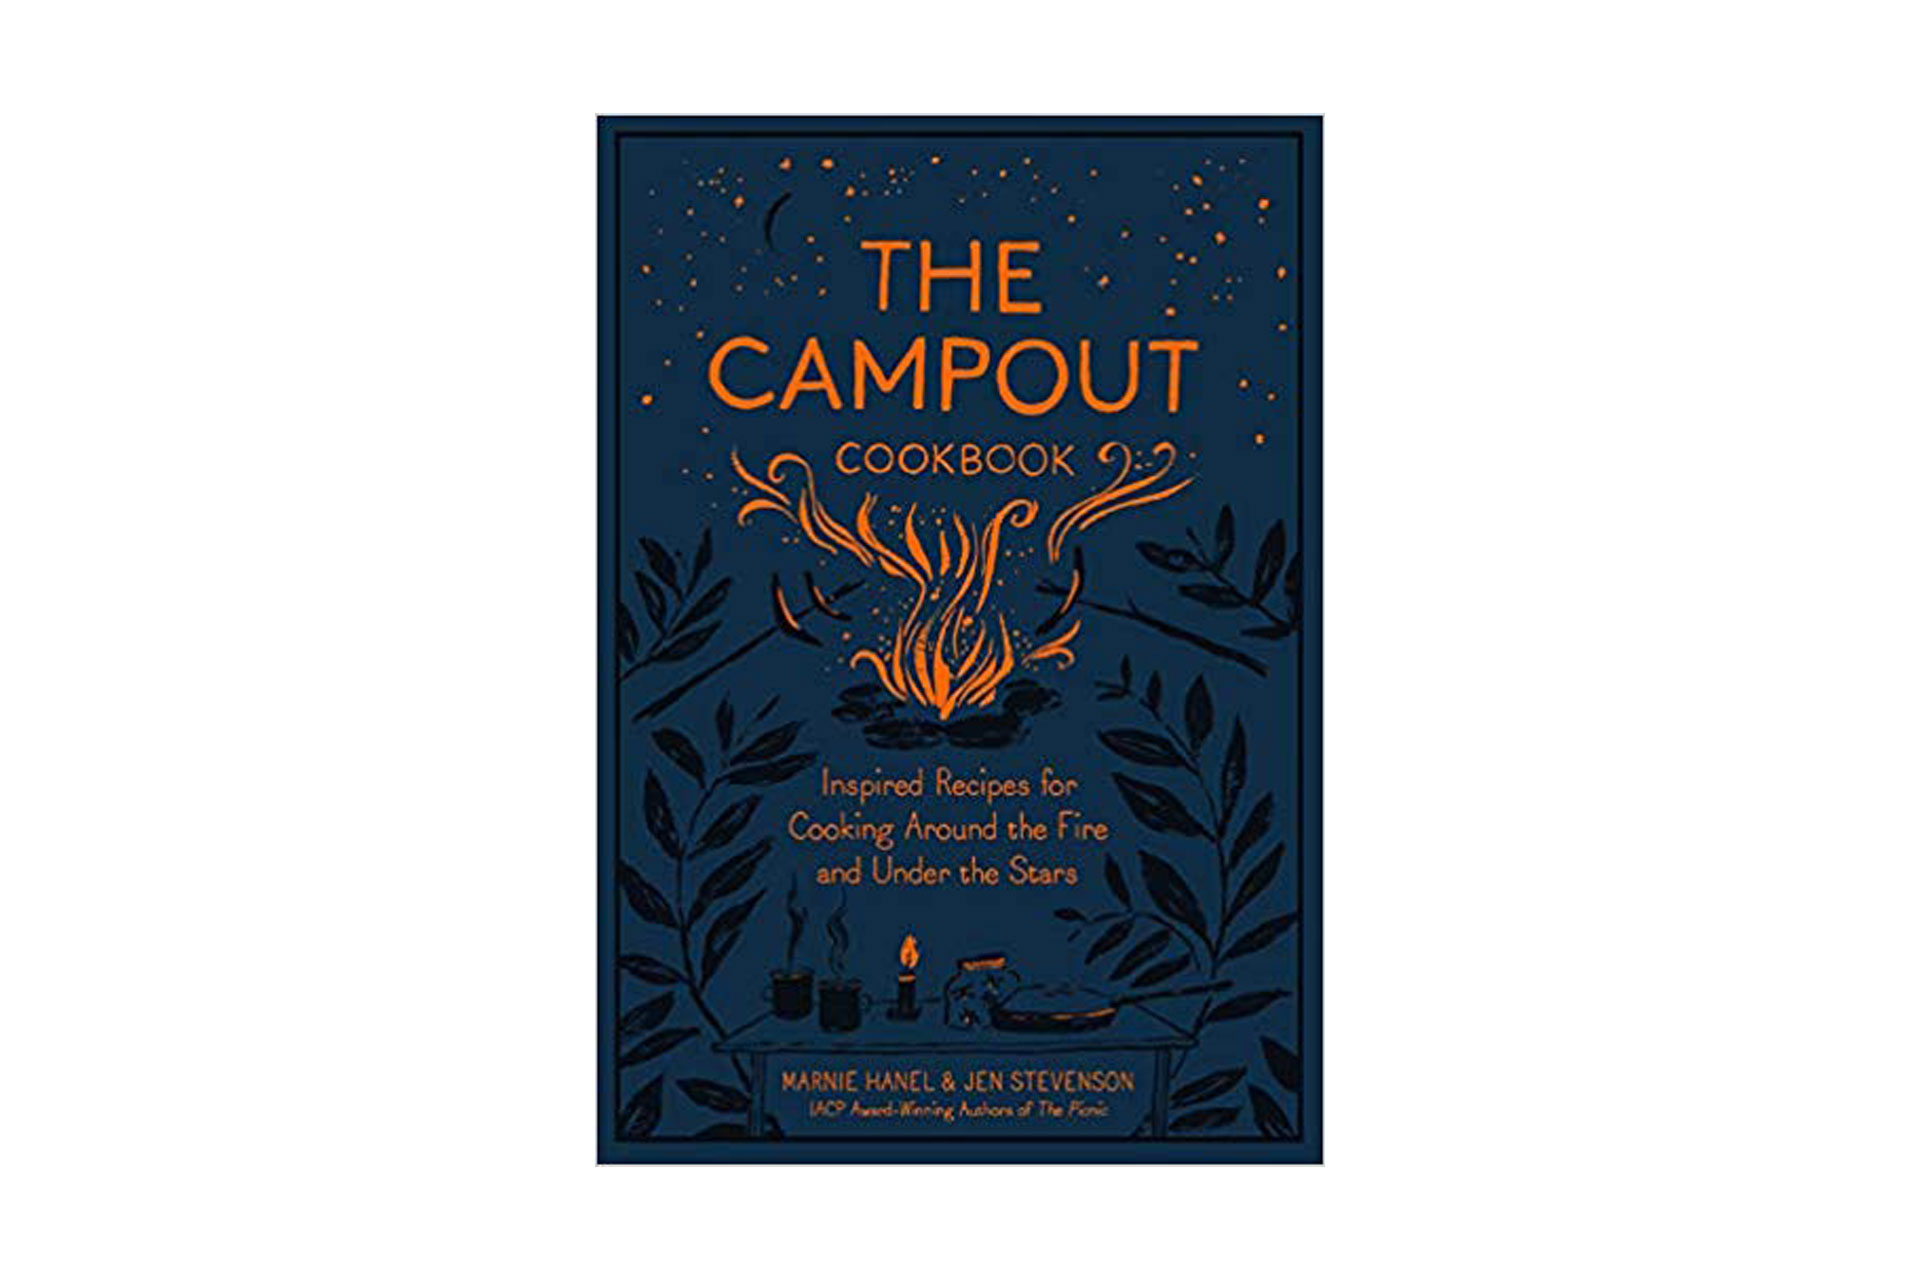 Campout Cookbook; Courtesy of Amazon